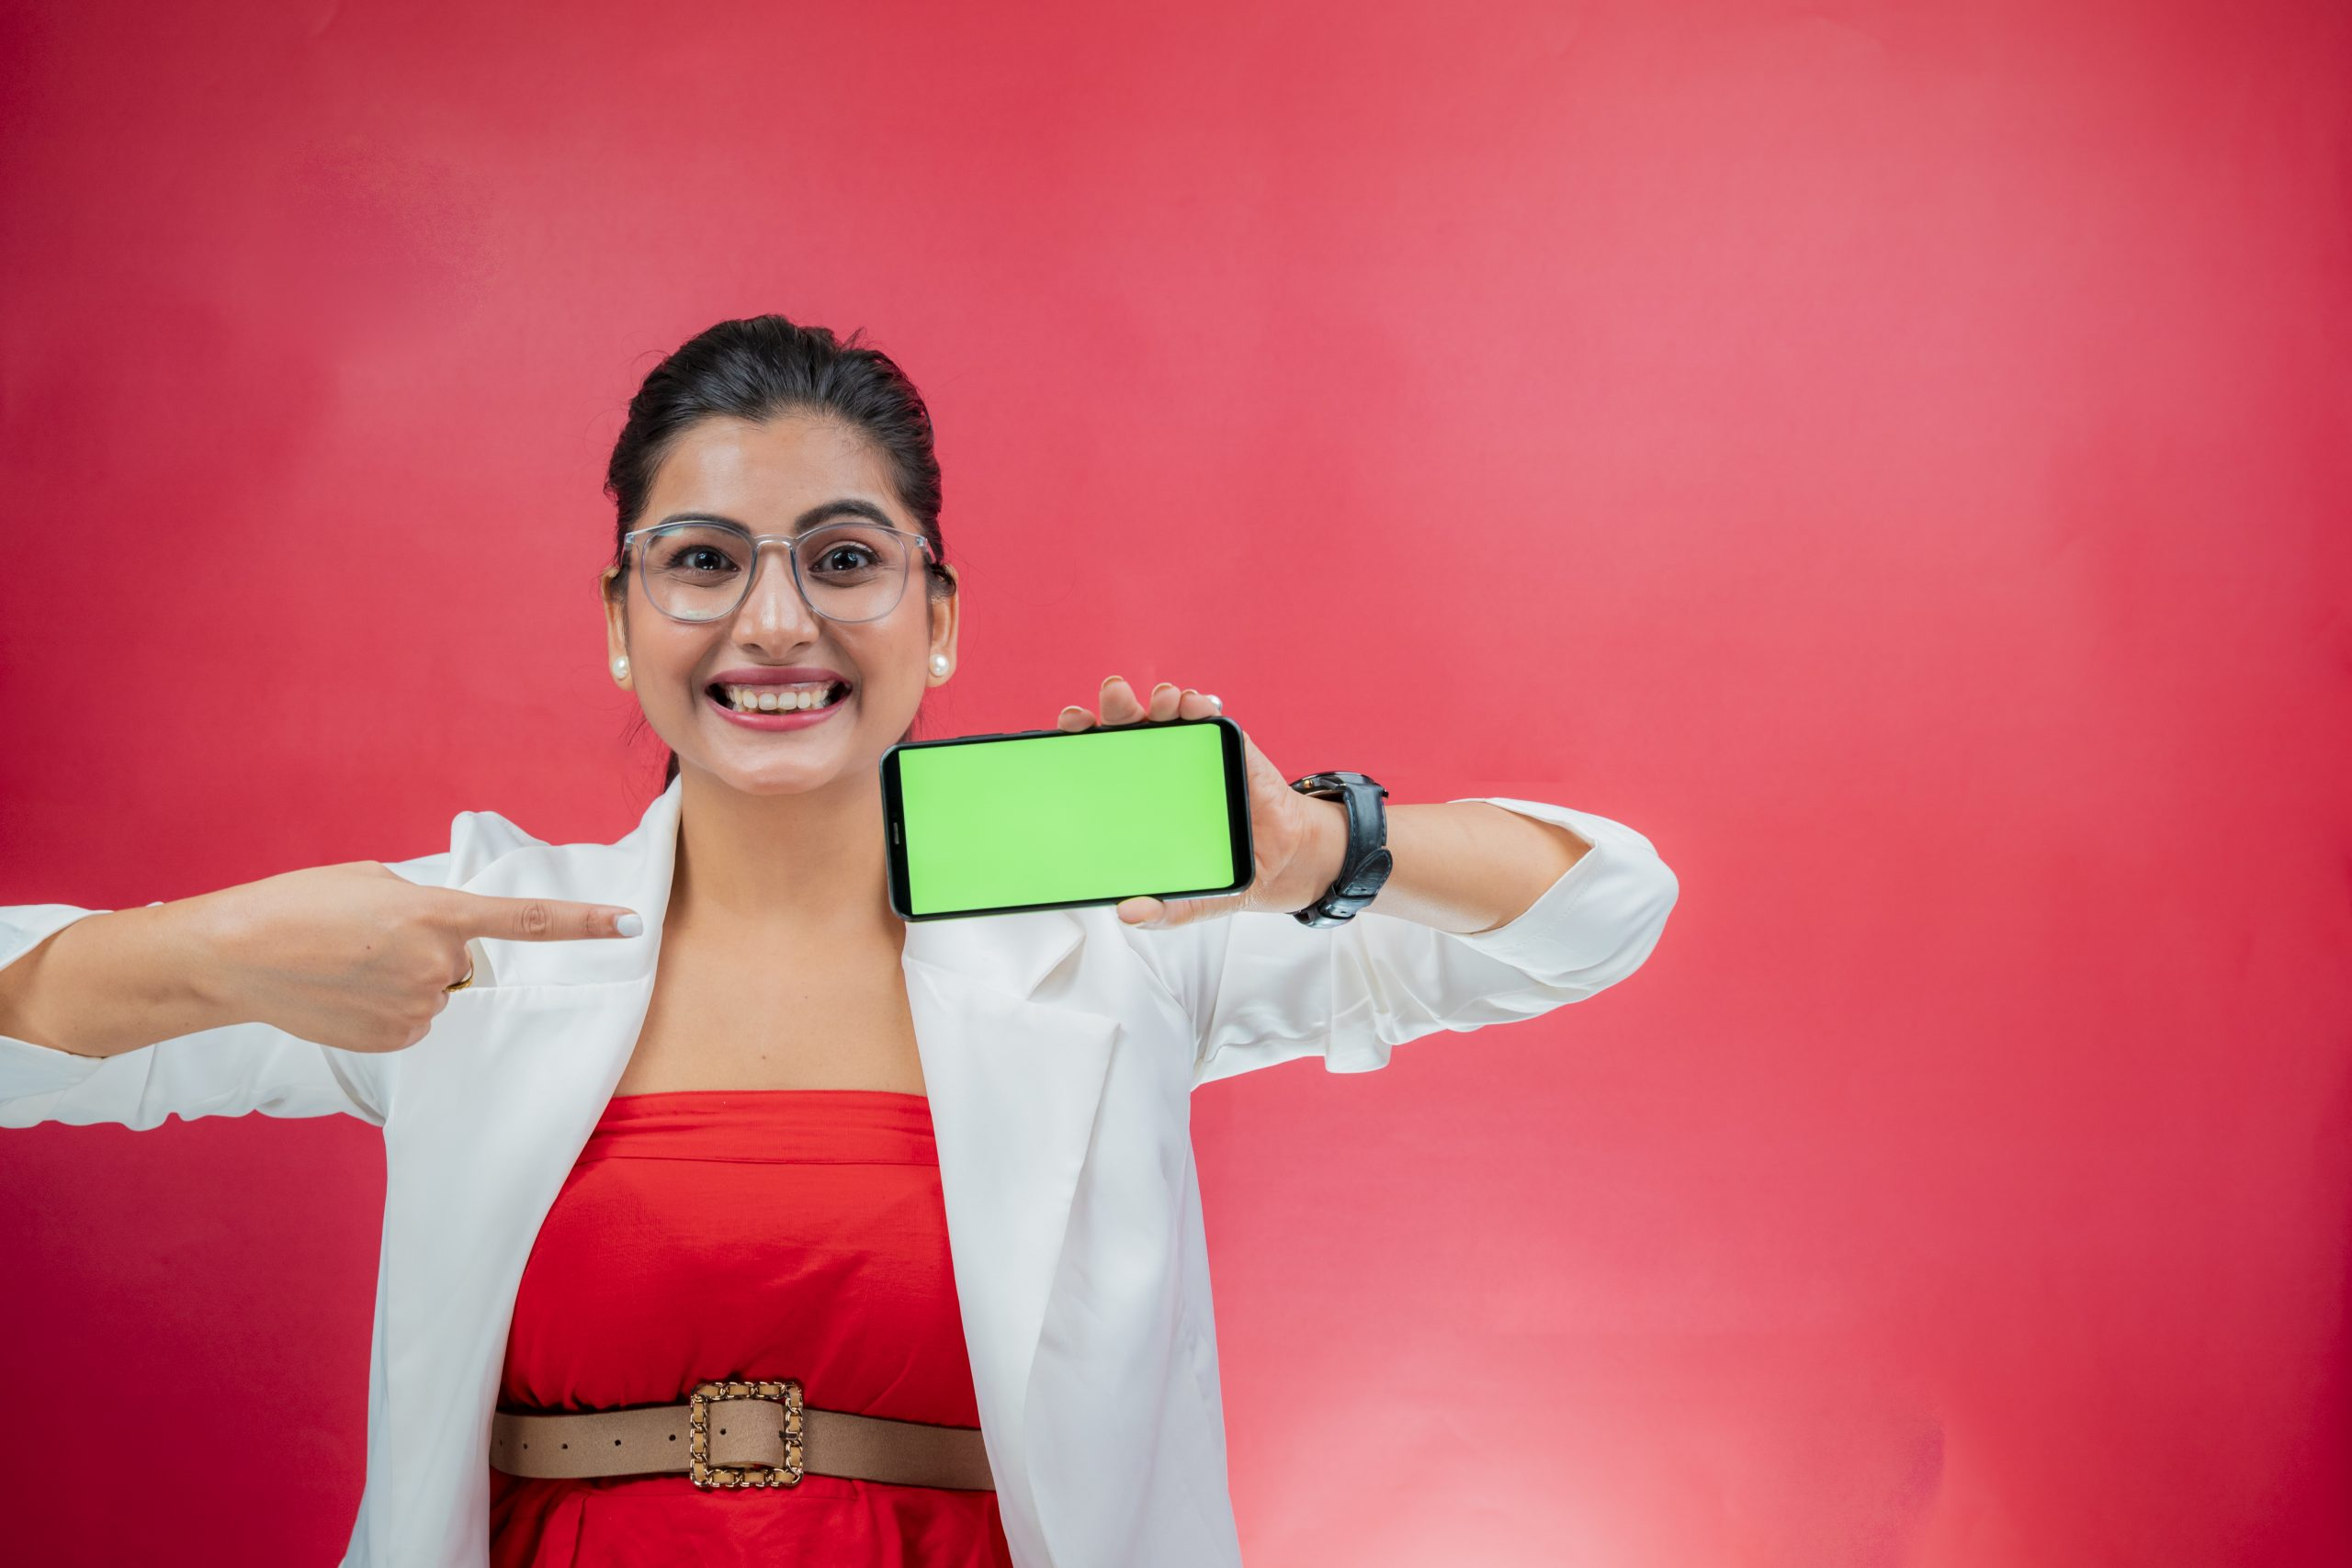 Happy young woman smiling and pointing towards green screen place holder phone horizontally